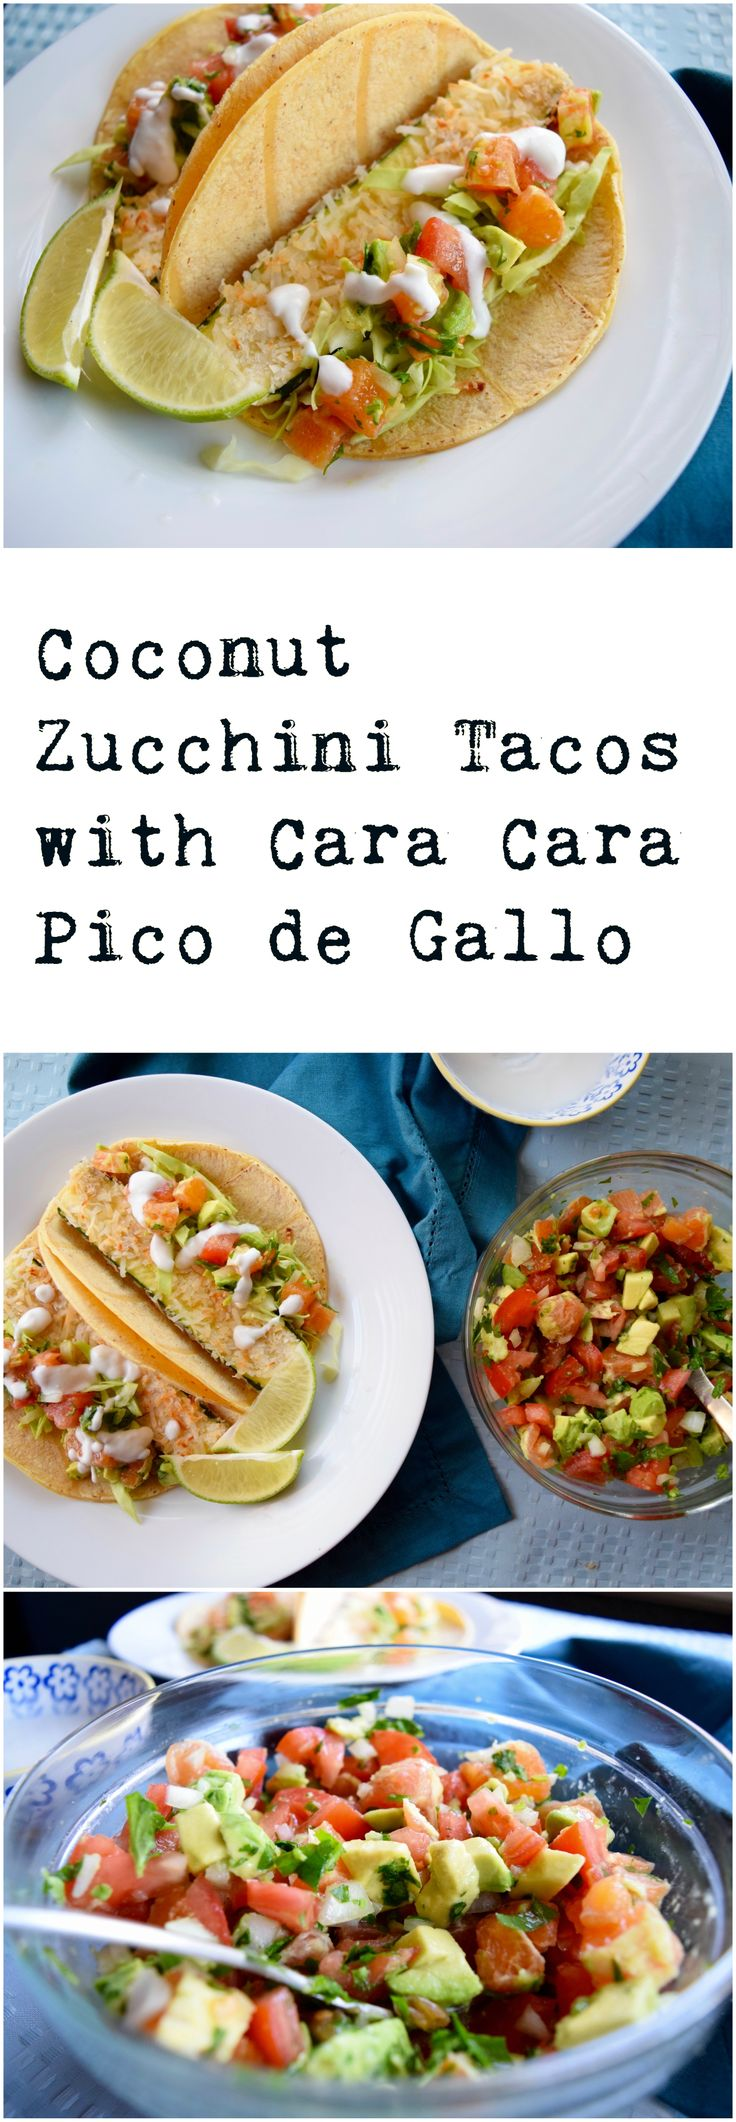 Delicious coconut crusted zucchini goes perfectly with cara cara orange pico de gallo in these vegan tacos.